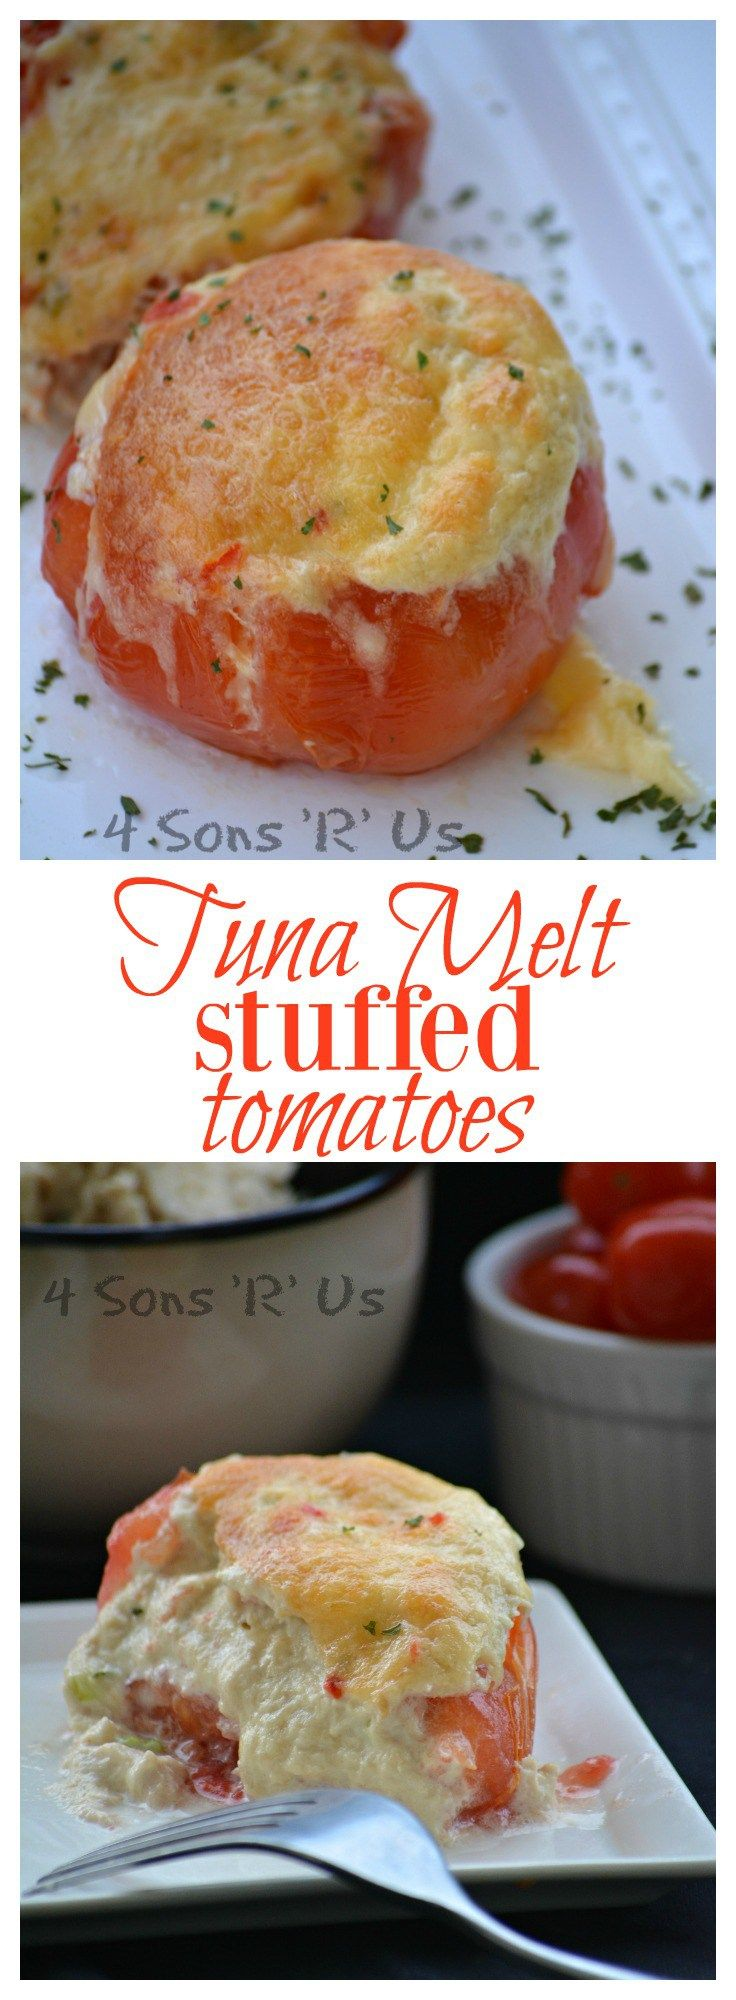 Do you love a good tuna melt? Then these stuffed tomatoes are for you. Ripe, juicy hollowed out tomatoes are stuffed with hearty tuna salad before being topped with spiced Havarti cheese. Just like the iconic open faced sandwich these are baked in the oven– roasting the tomatoes and baking their flavor right in.